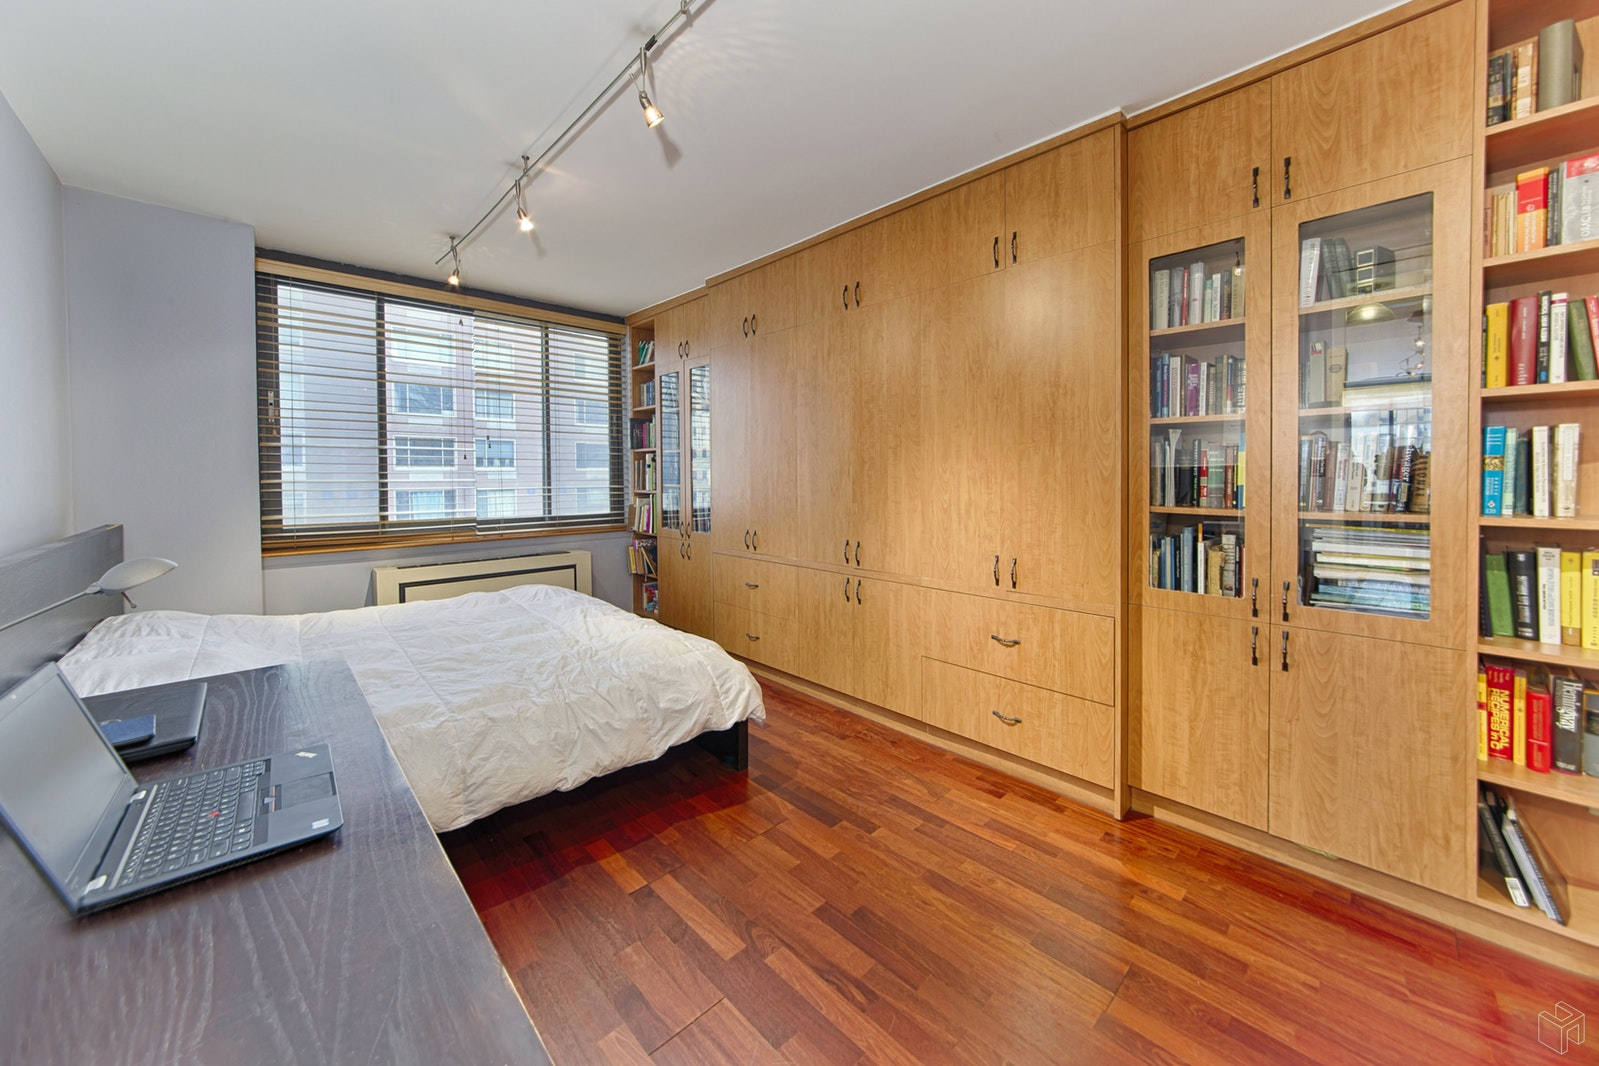 300 ALBANY STREET 8I, Battery Park City, $1,099,000, Web #: 19495539